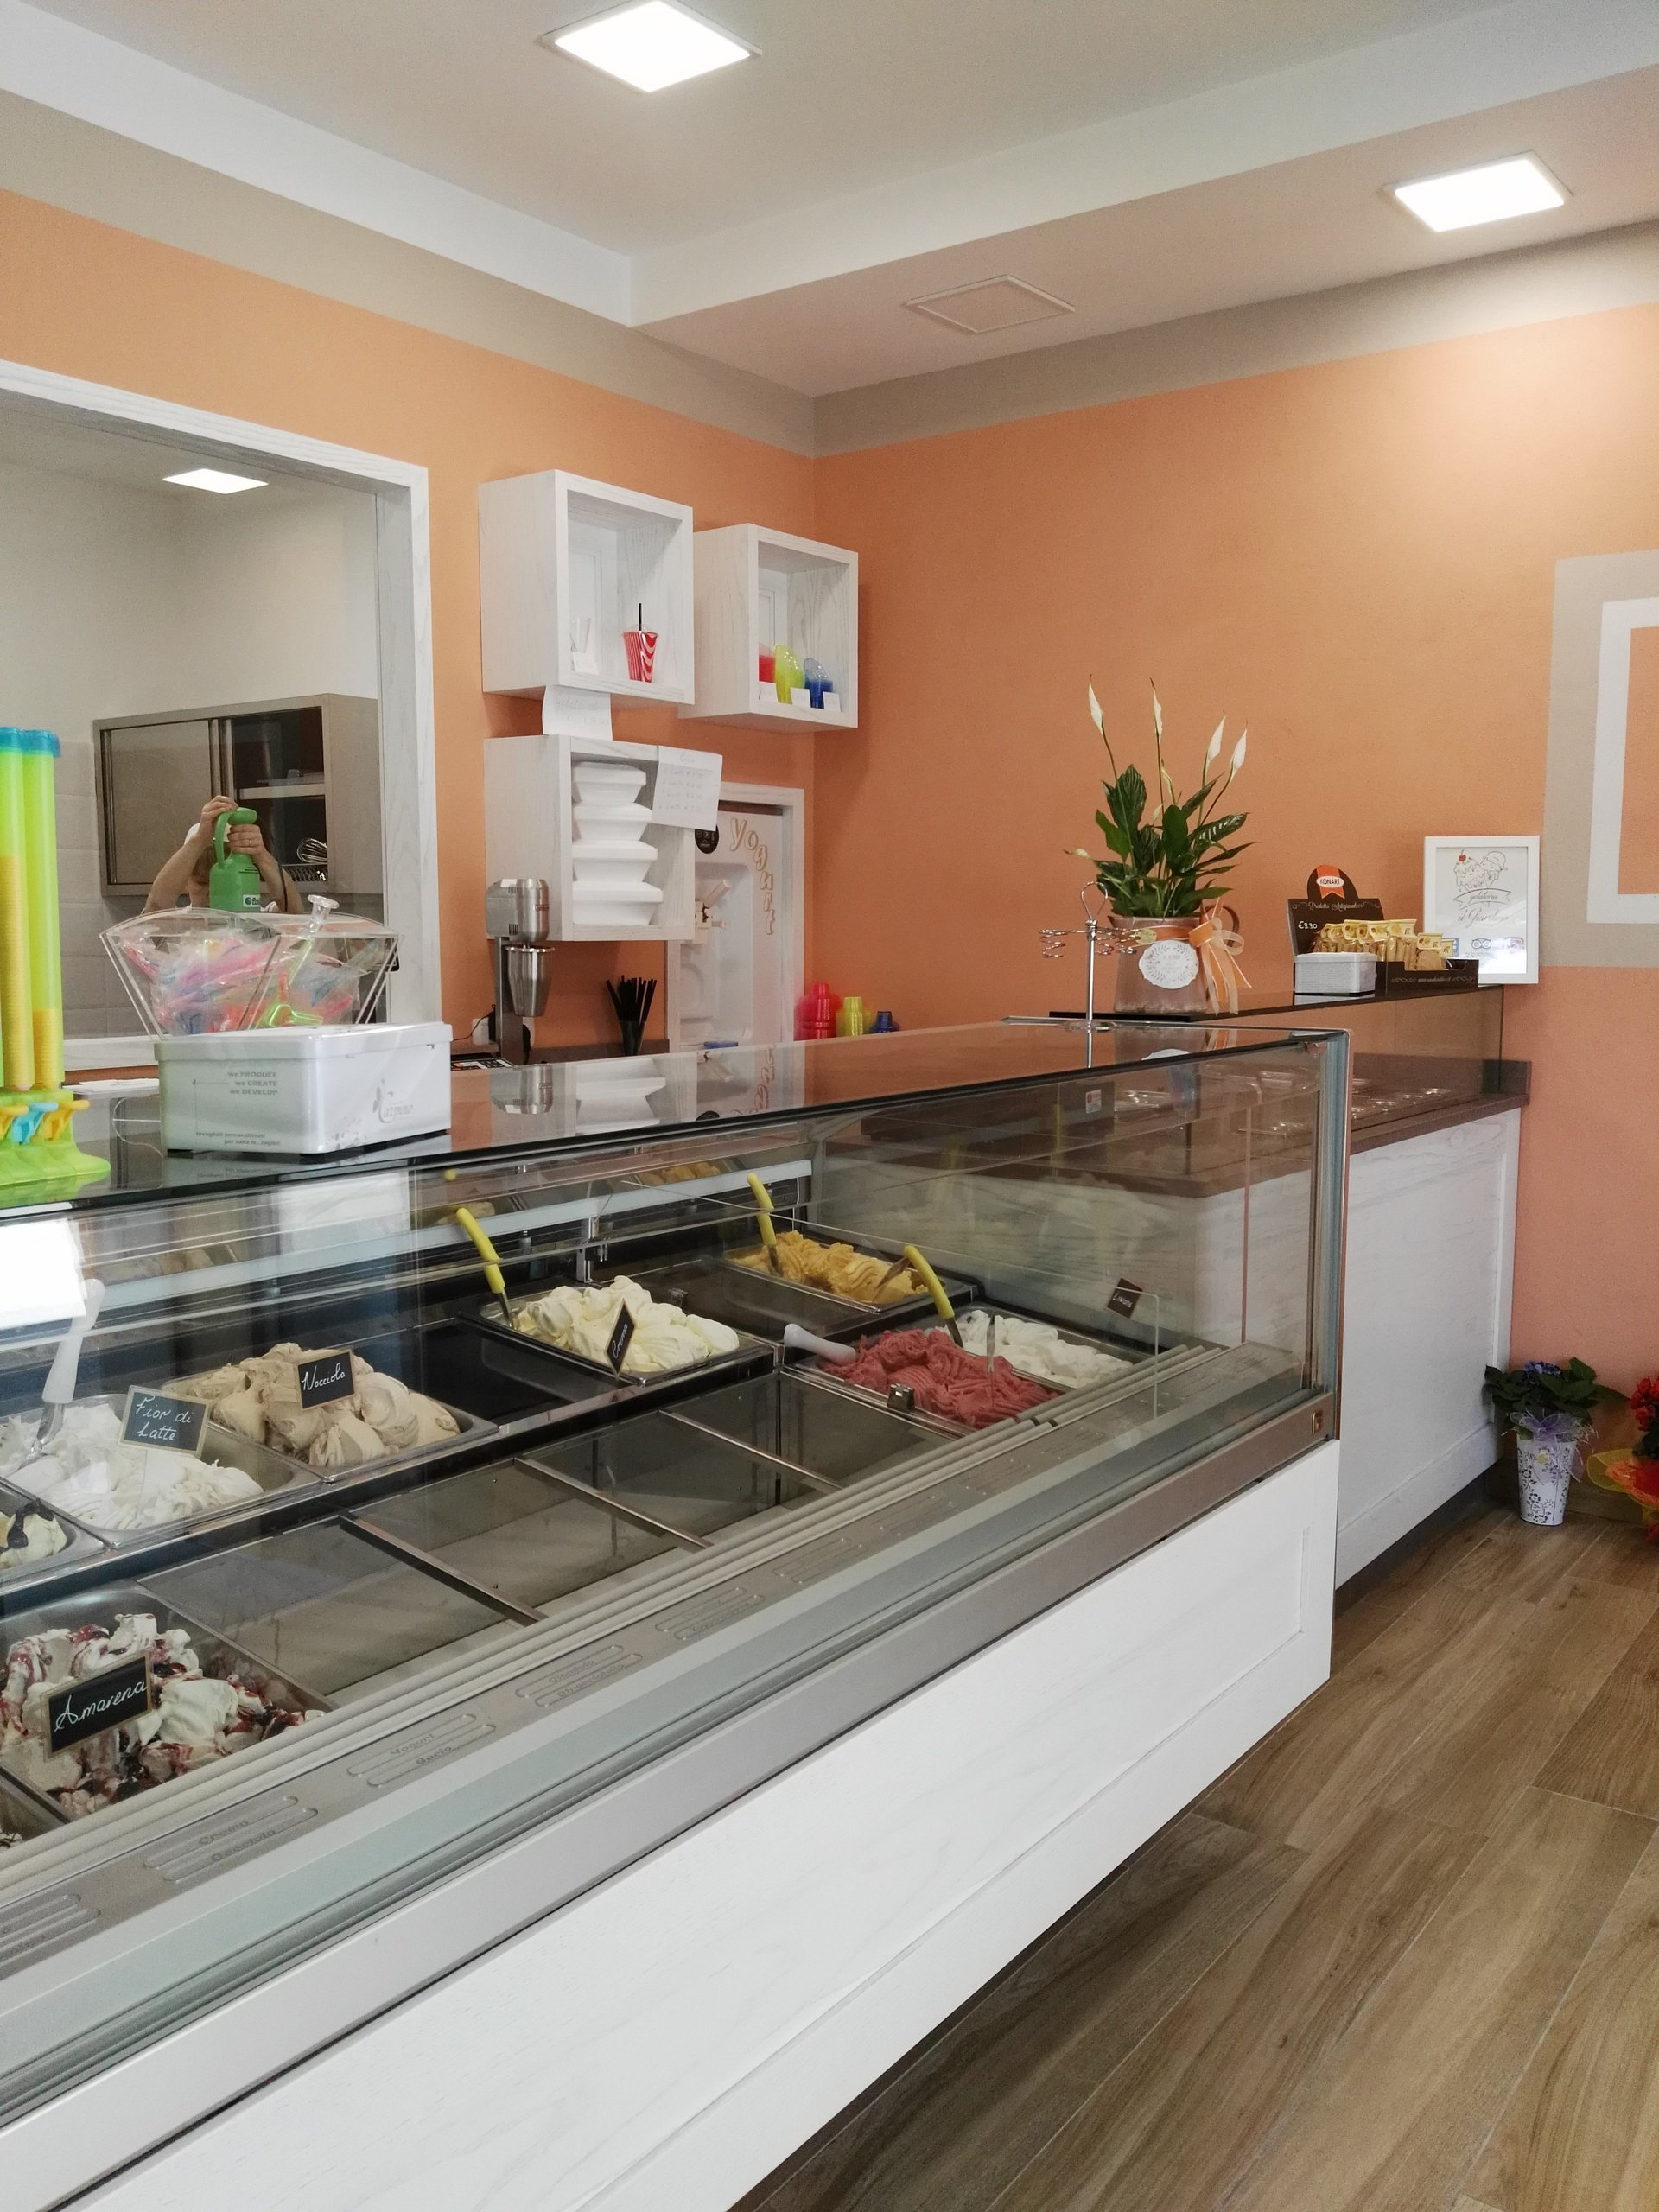 Vista laterale interno gelateria con banco frigo